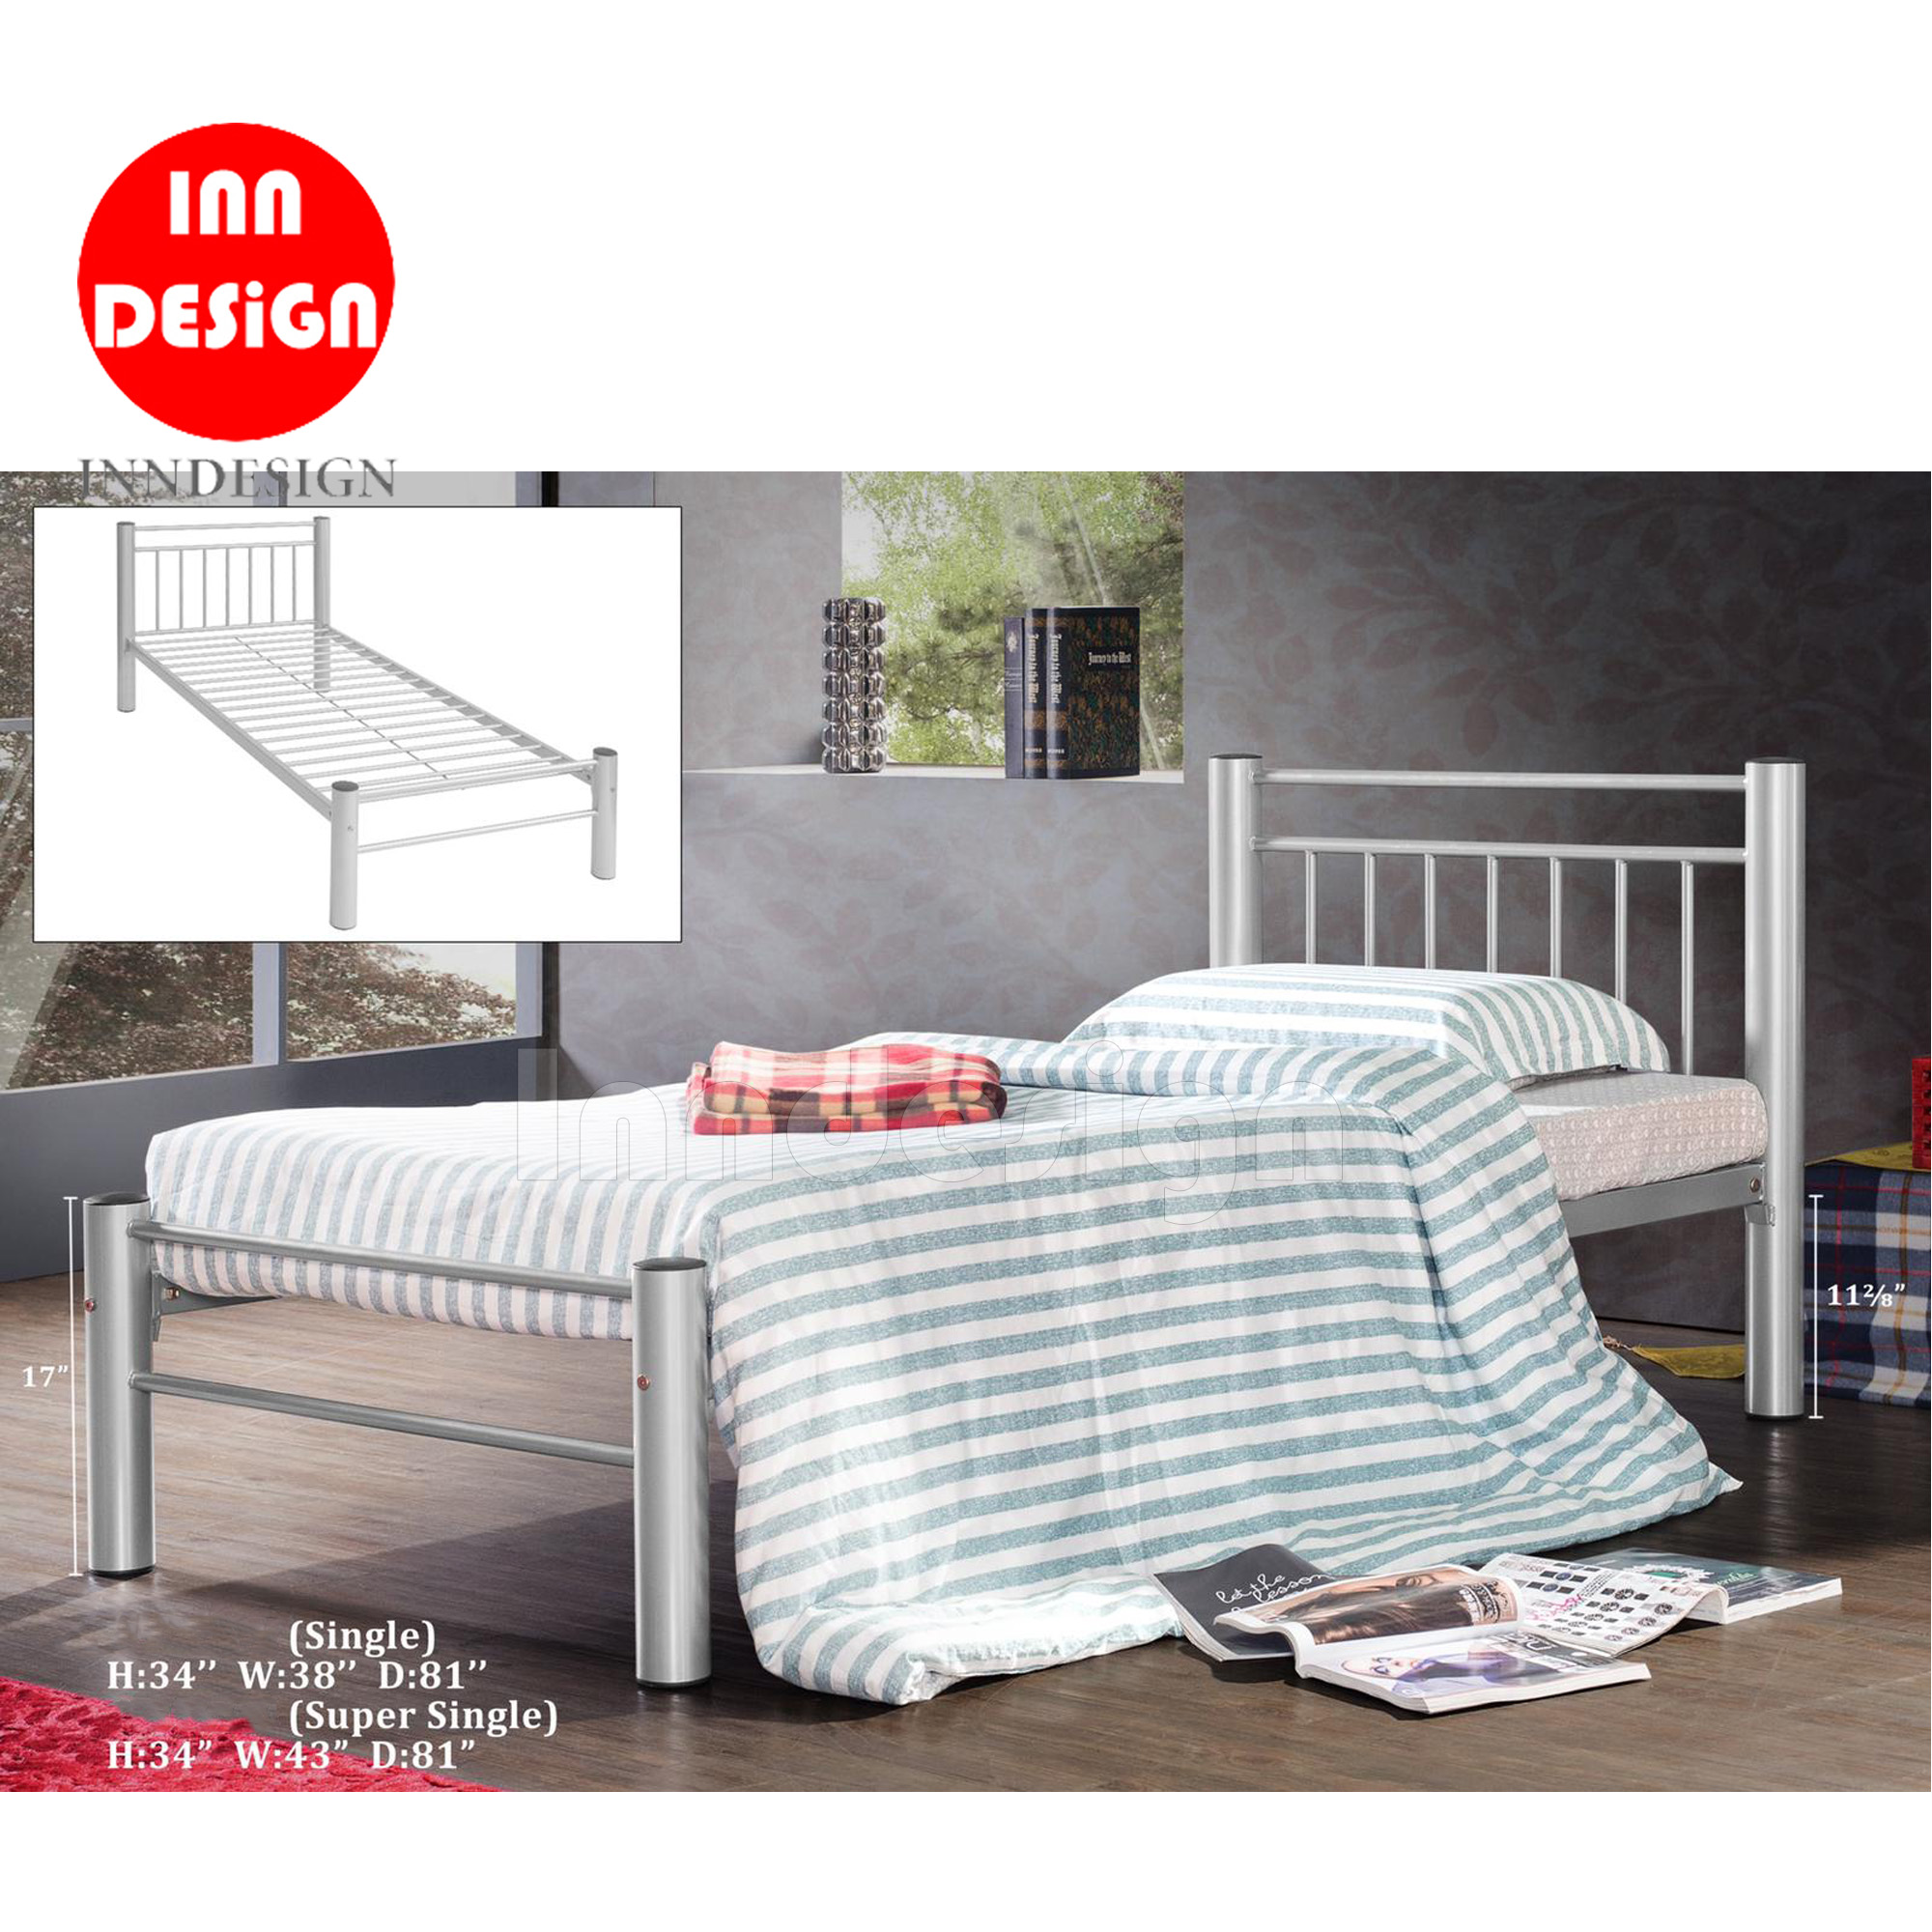 Ceili Single Metal Bedframe